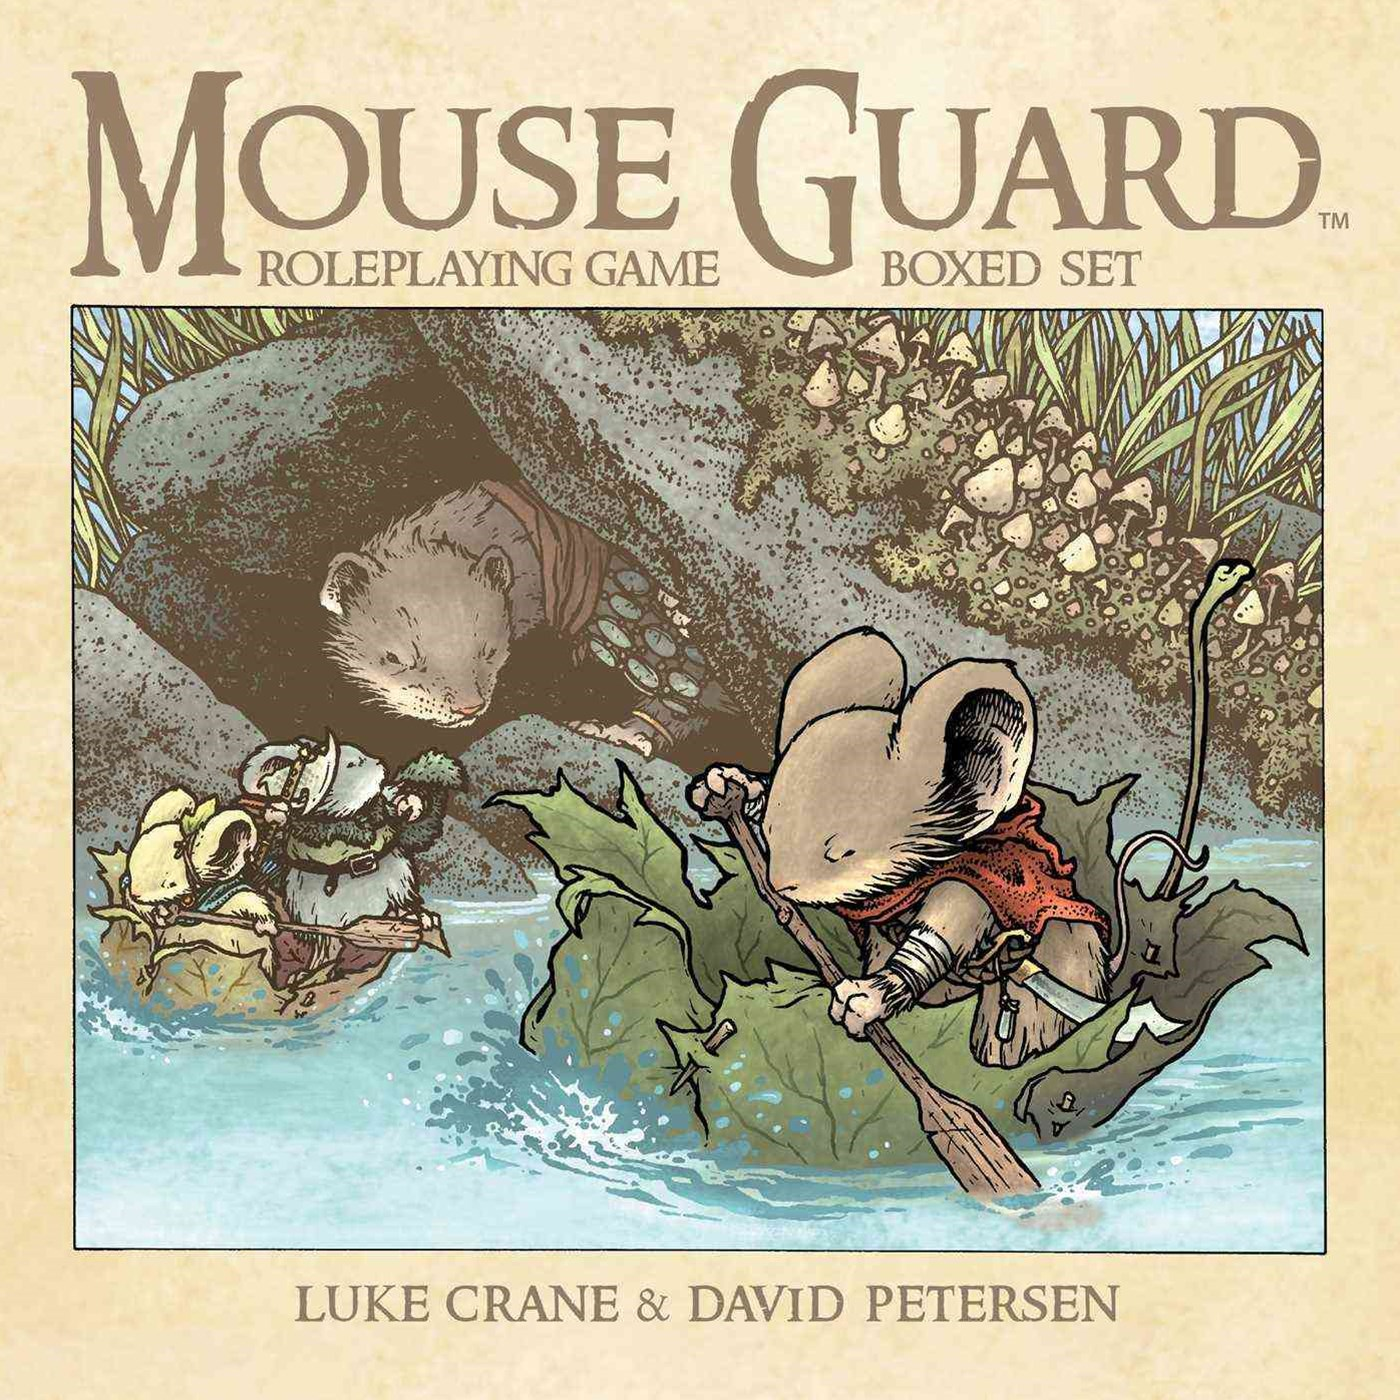 Mouse Guard Roleplaying Game Box Set, 2nd Ed